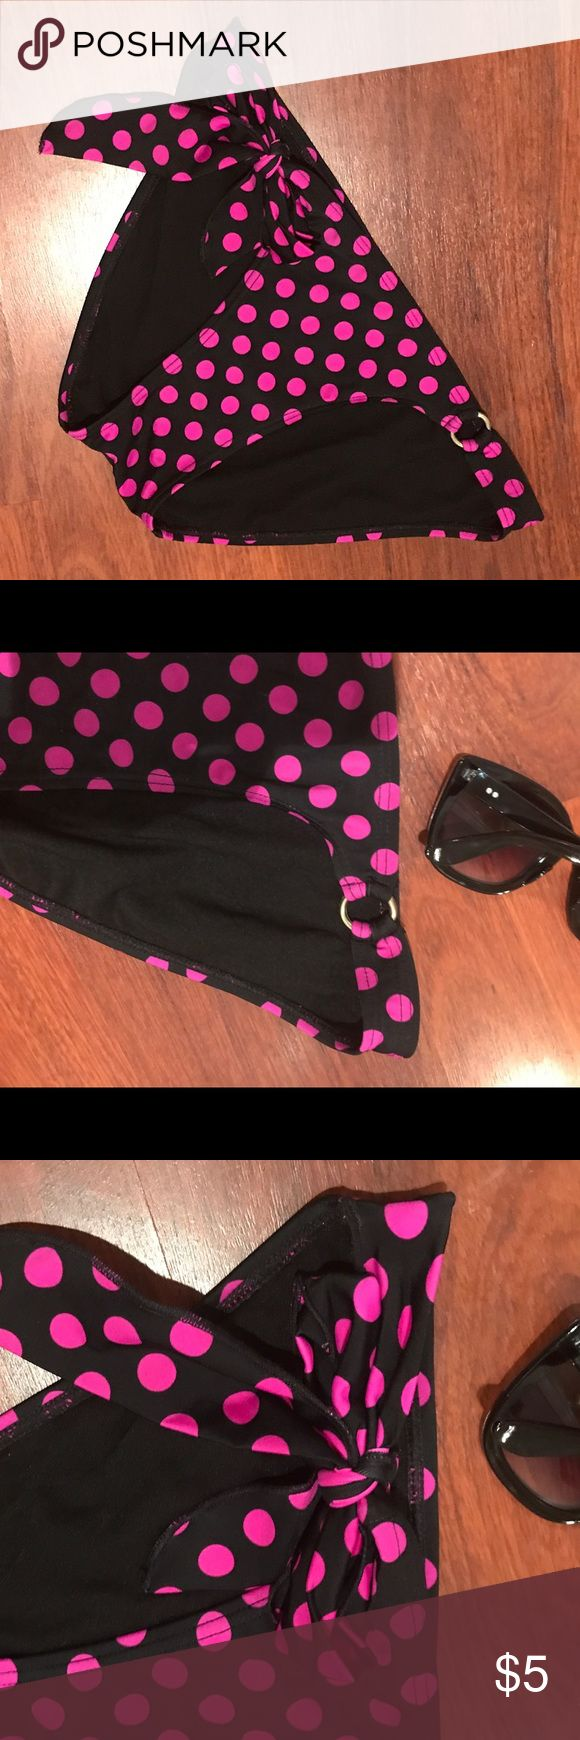 LIKE NEW! Bundle me! Black w/ pink polka dots. Size Med. bottoms only. Super cute & only Worn once! Low cut. One side ties to make it adjustable. Gold ring on other side. Swim Bikinis